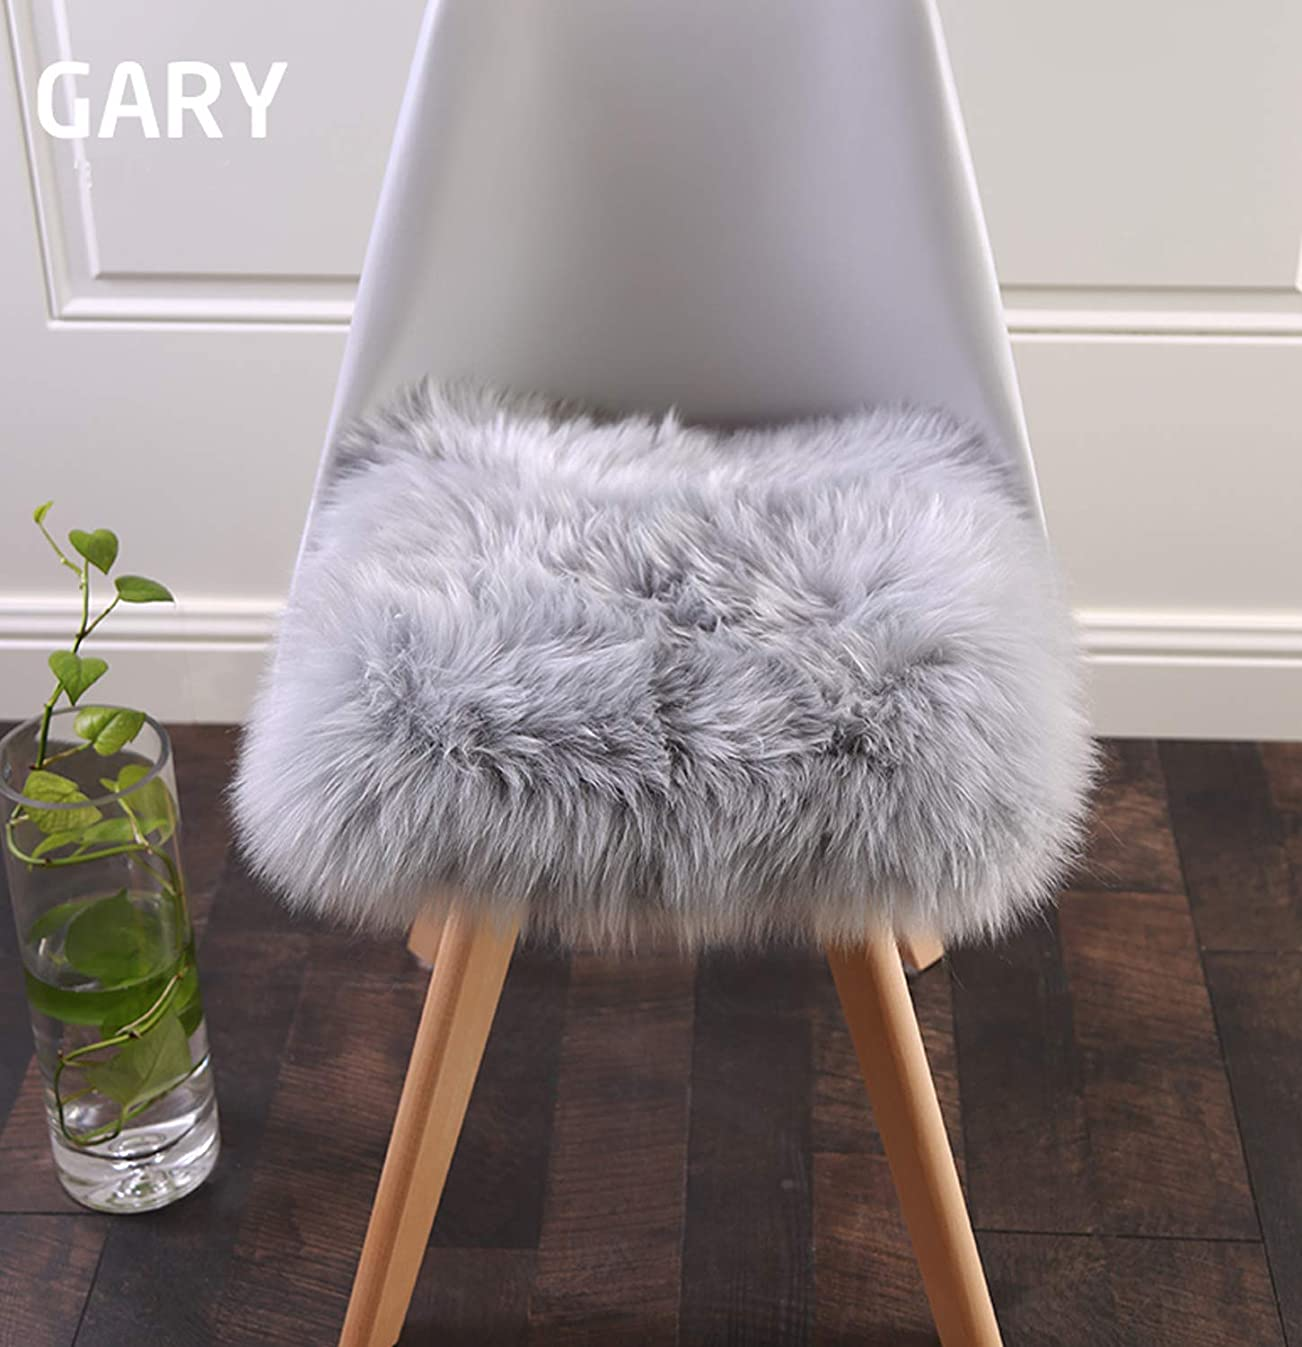 Super Soft Faux Fur Sheepskin Rugs Soft Plush seat Cover Pads for Chair Living & Bedroom Sofa Grey,16x16 Inch